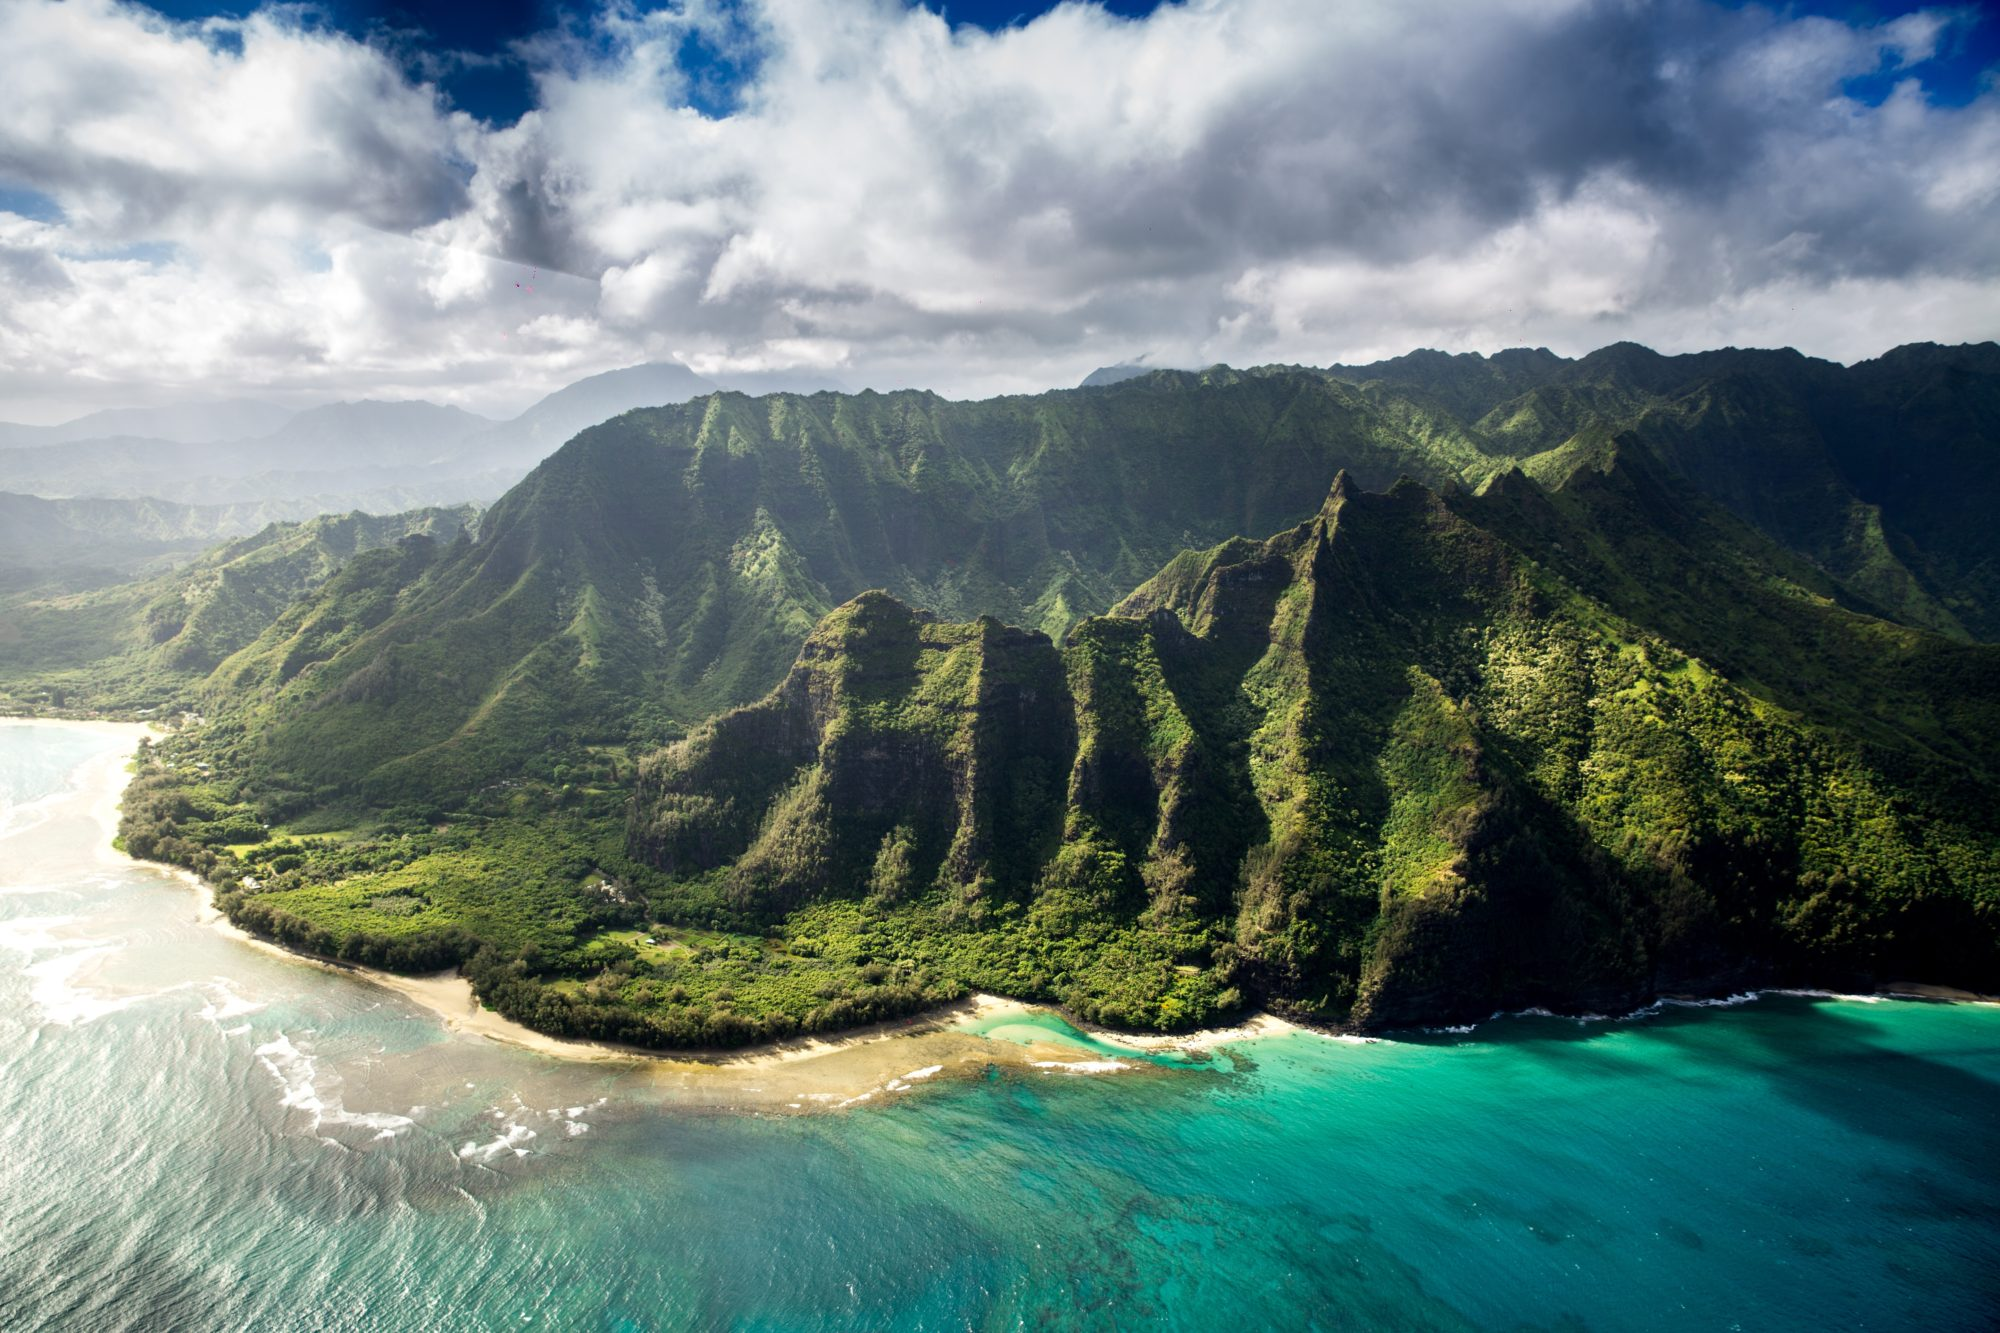 Kauai County, United States, Tips For Scuba Diving